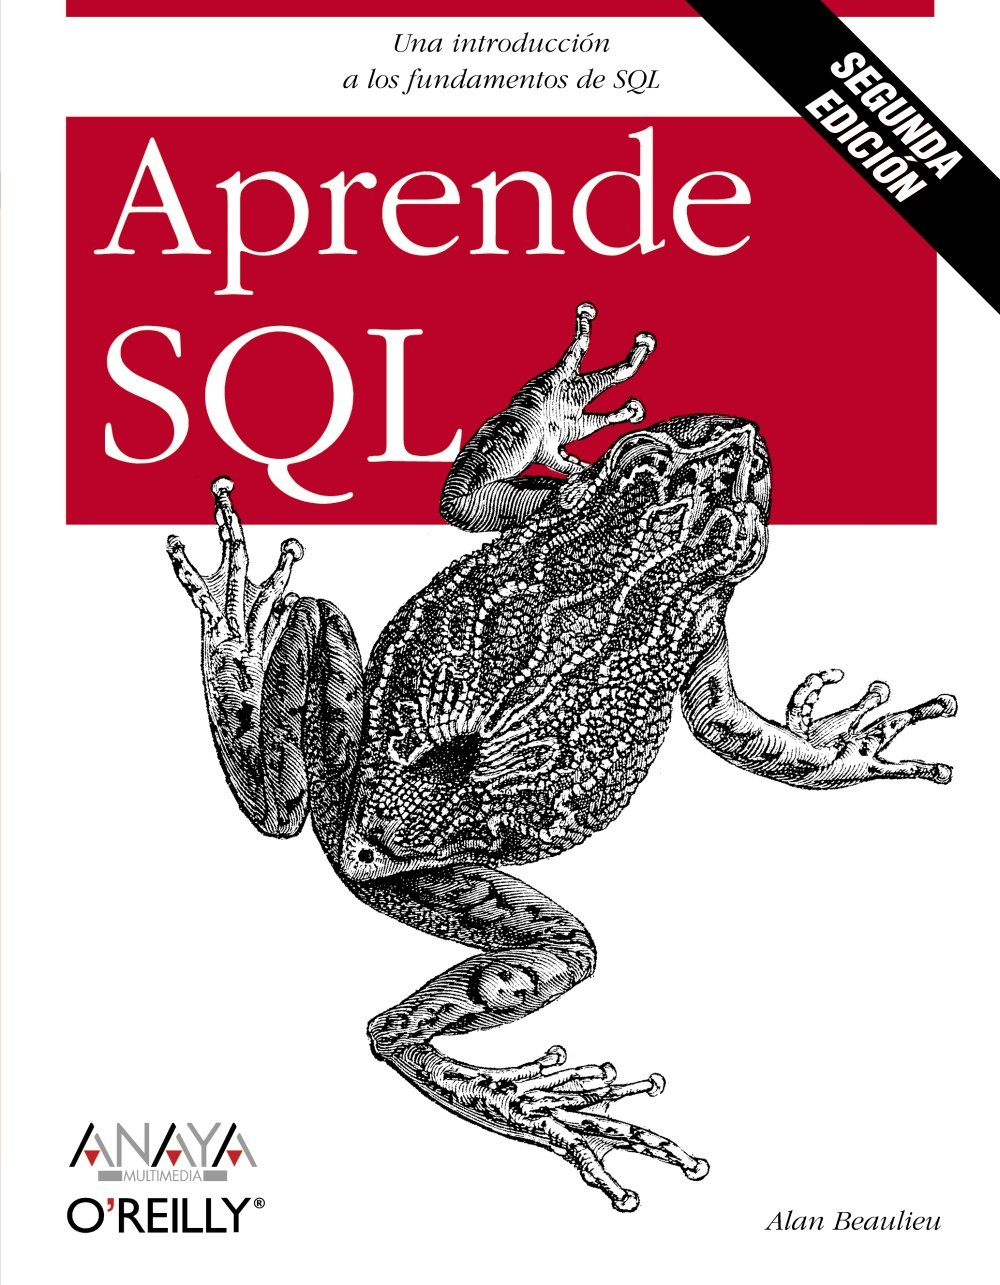 Aprende SQL. Segunda edición (Anaya Multimedia/O´Reilly) Tapa blanda – 12 oct 2009 Alan Beaulieu 8441526370 LBR9788441526372D65 Databases - General